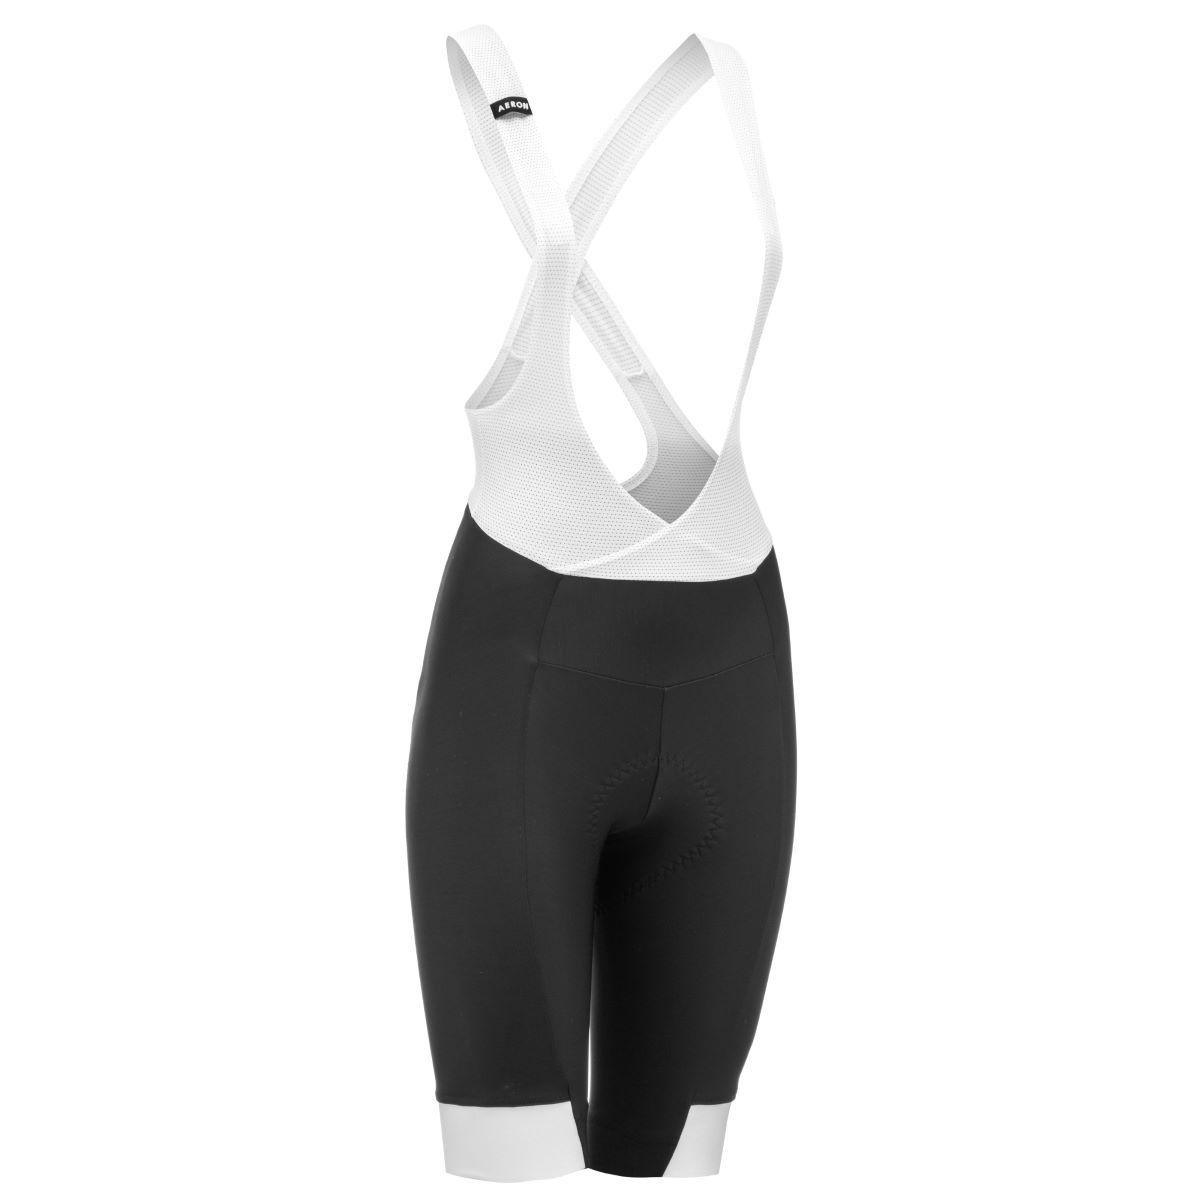 dhb Aeron Women's Bib Shorts - UK 8 Black/White | Bib Shorts